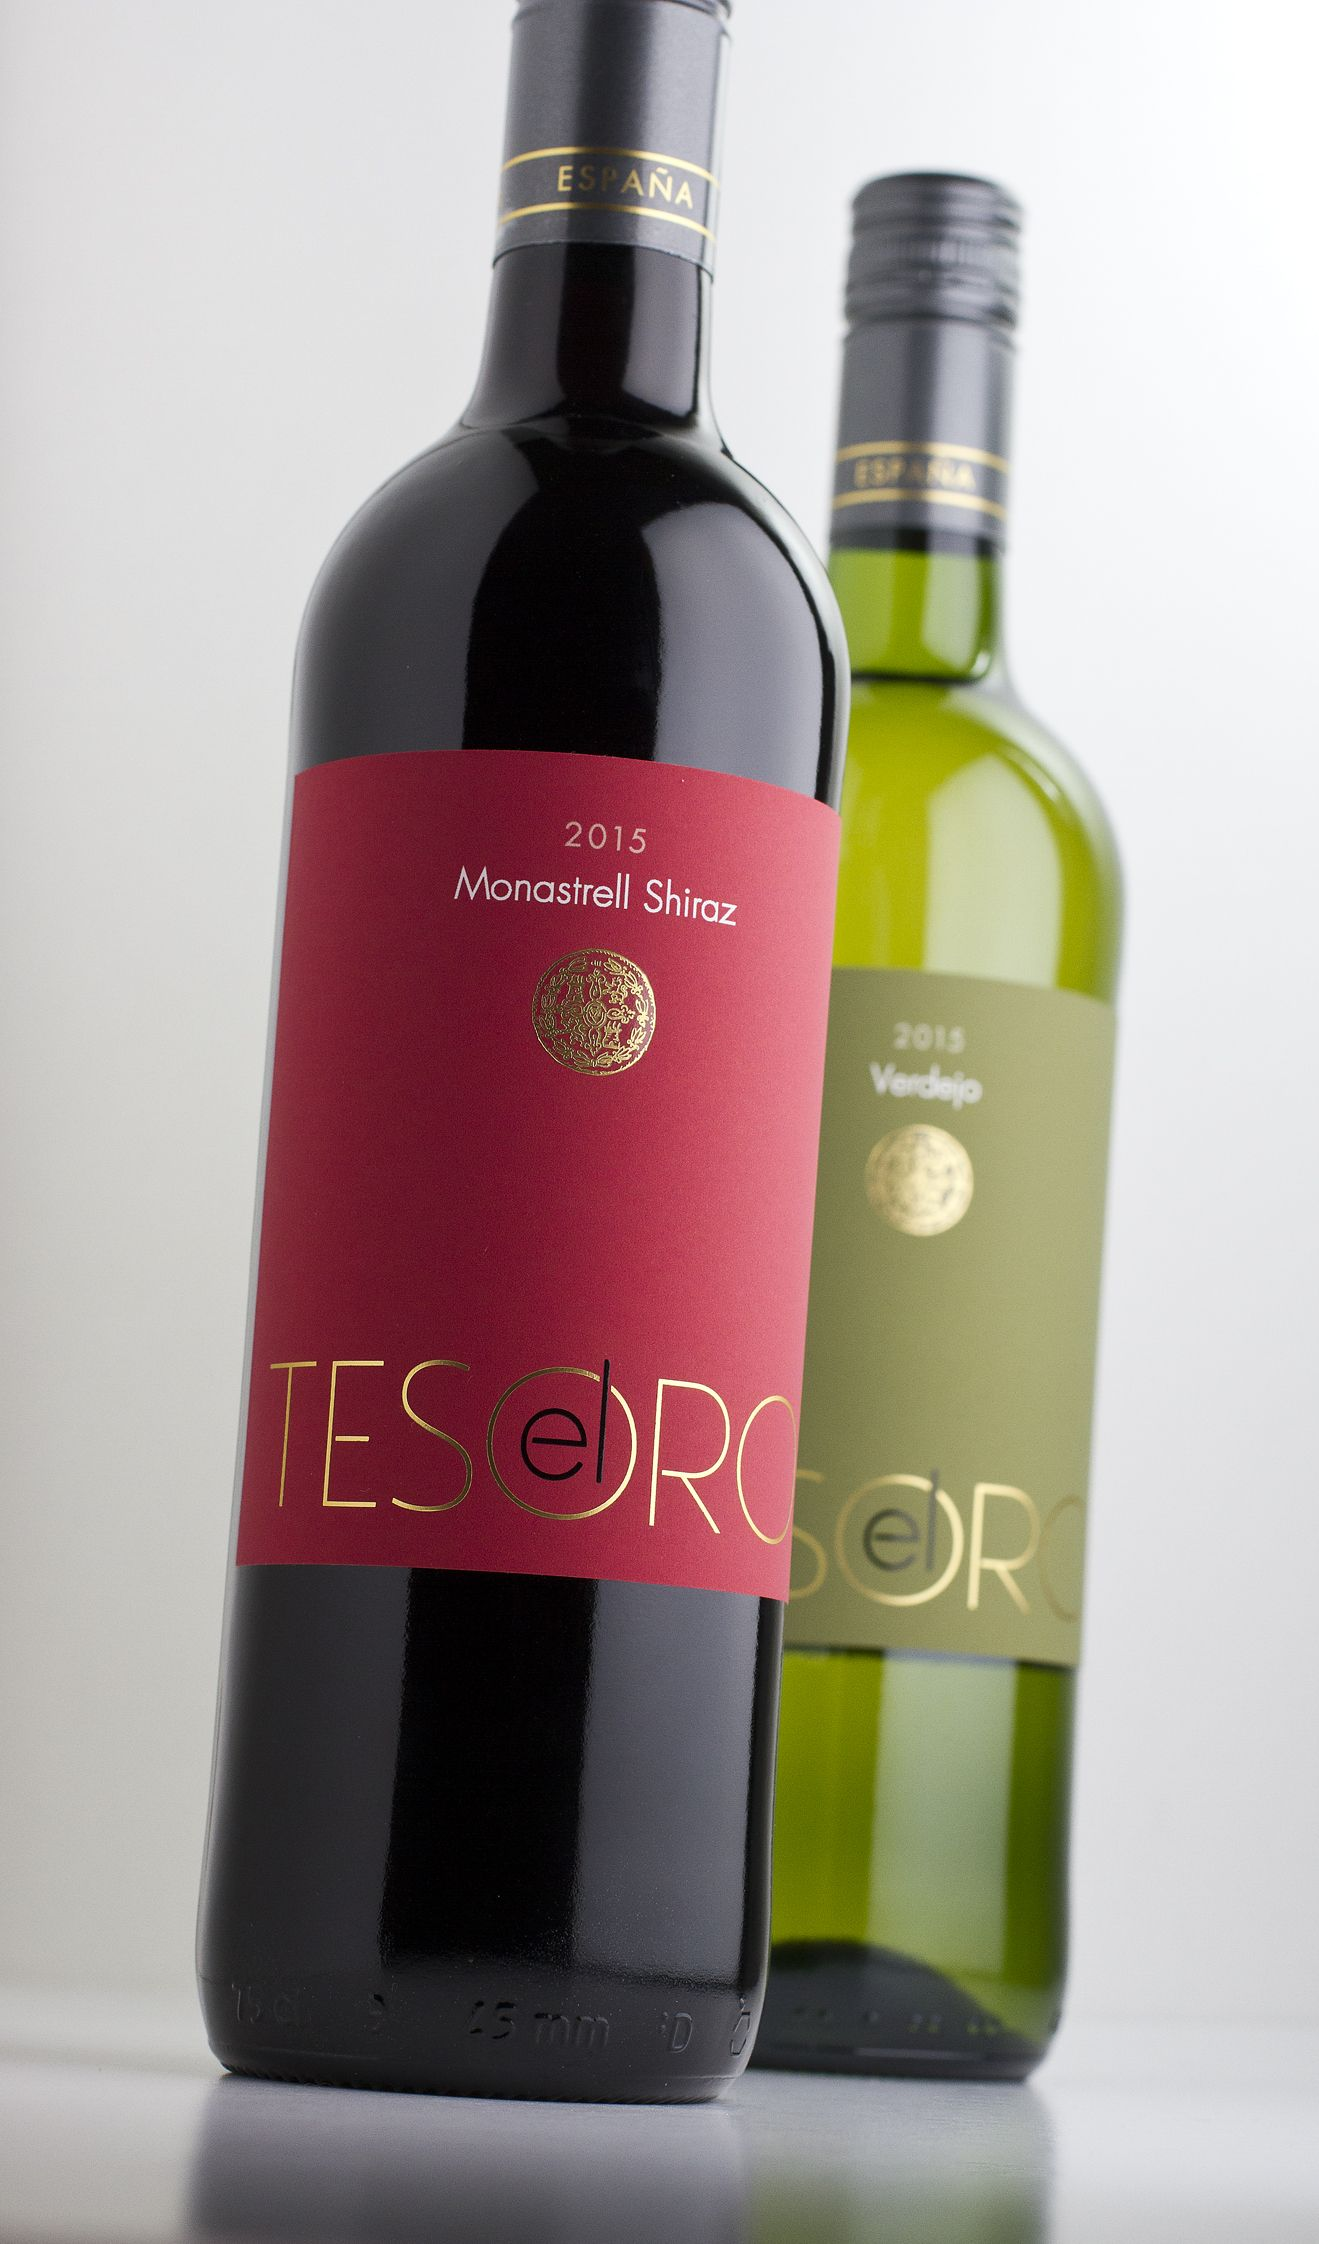 El Tesoro Bold Modern Re Design For This Spanish Pair Wine Label Design Wine Label Collection Wine Label